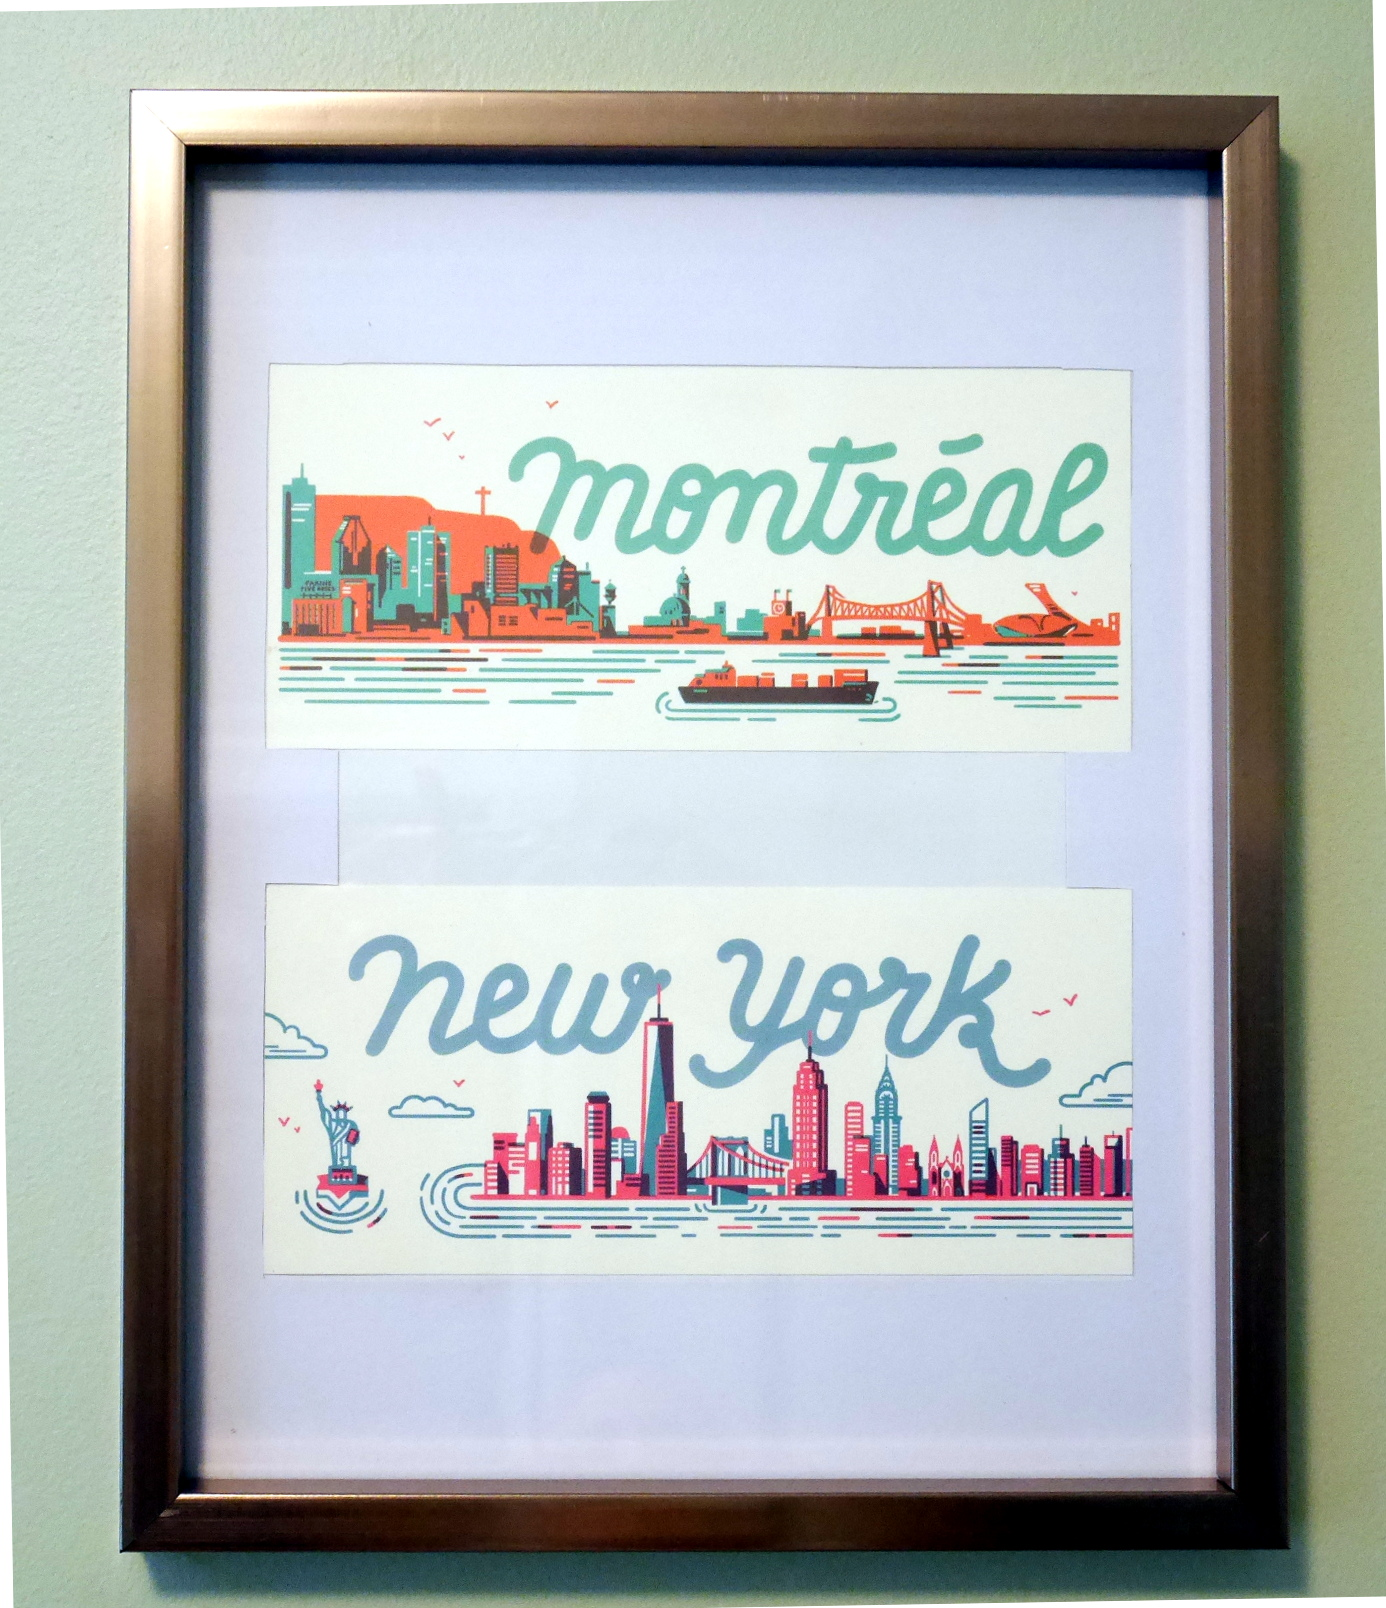 Montreal & New York skylines, postcards.